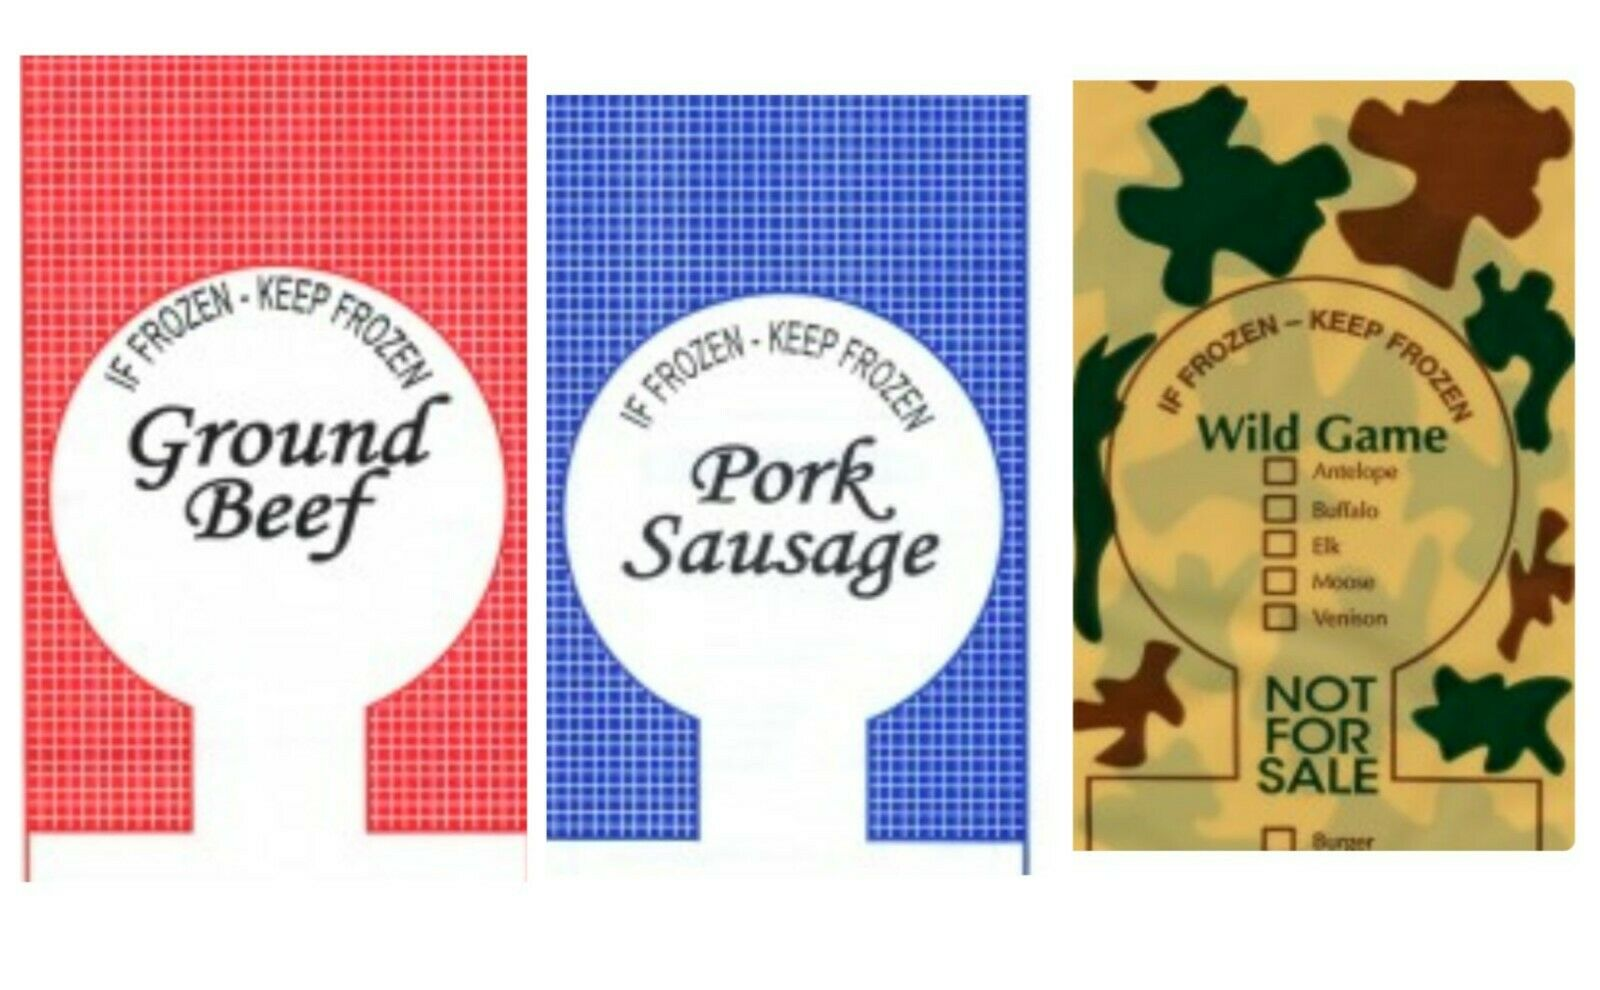 STAINLESS STEEL MEAT PACKING KIT INCLUDES TAPE 200 2LB PORK SAUSAGE BAGS